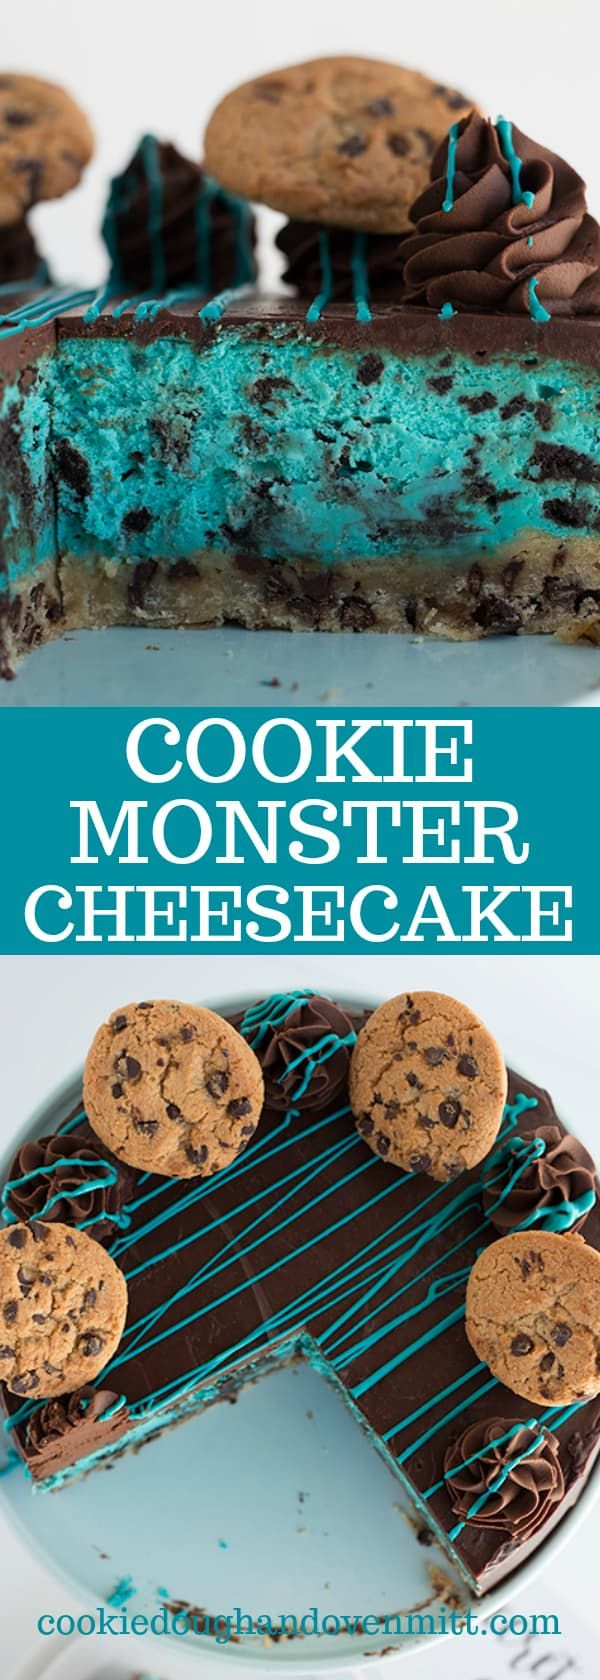 Cookie Monster Cheesecake - What's cuter than a cheesecake inspired by the cookie monster? There's a chocolate chip shortbread crust, a blue cheesecake filled with bits of oreo cookies and topped with ganache and chocolate chop cookies! via @mmmirnanda